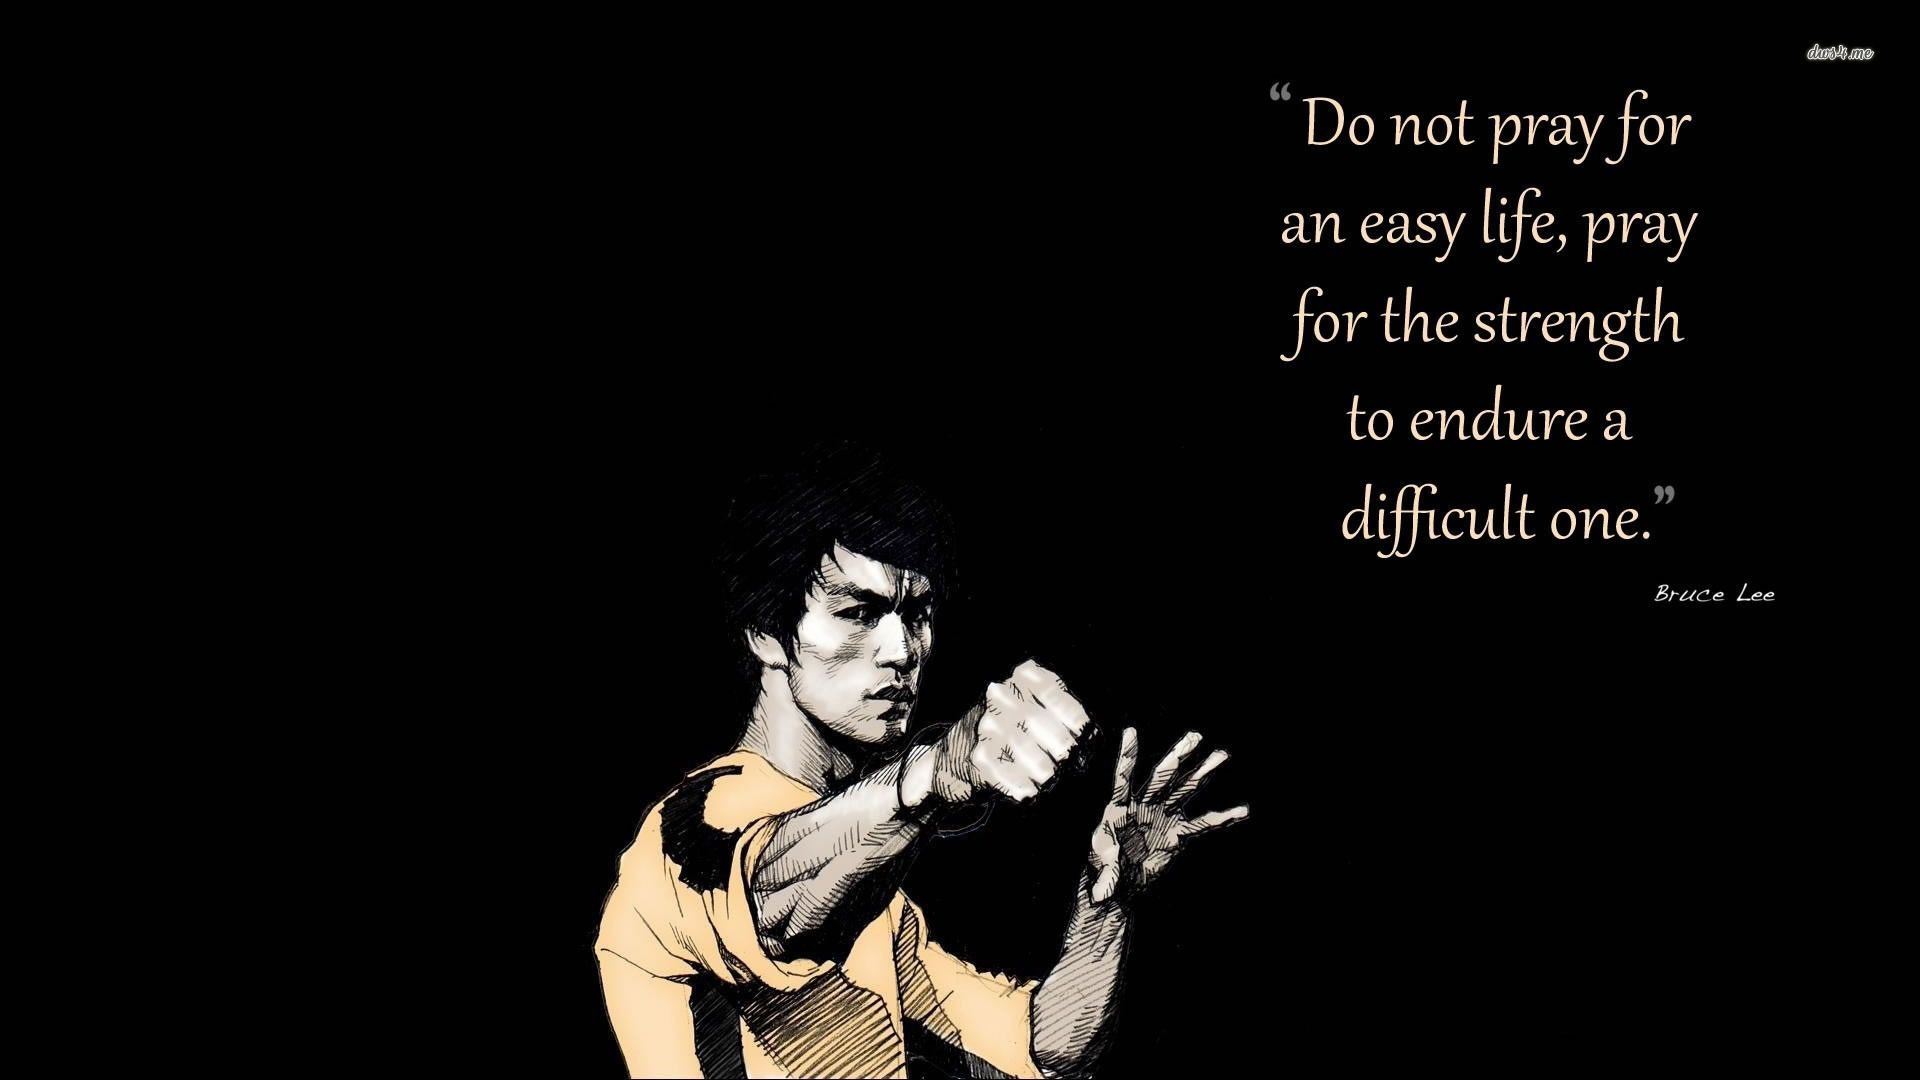 73 Wallpaper Inspirational Quotes With Nice Background In 2020 Bruce Lee Quotes Motivational Quotes Wallpaper Hd Quotes